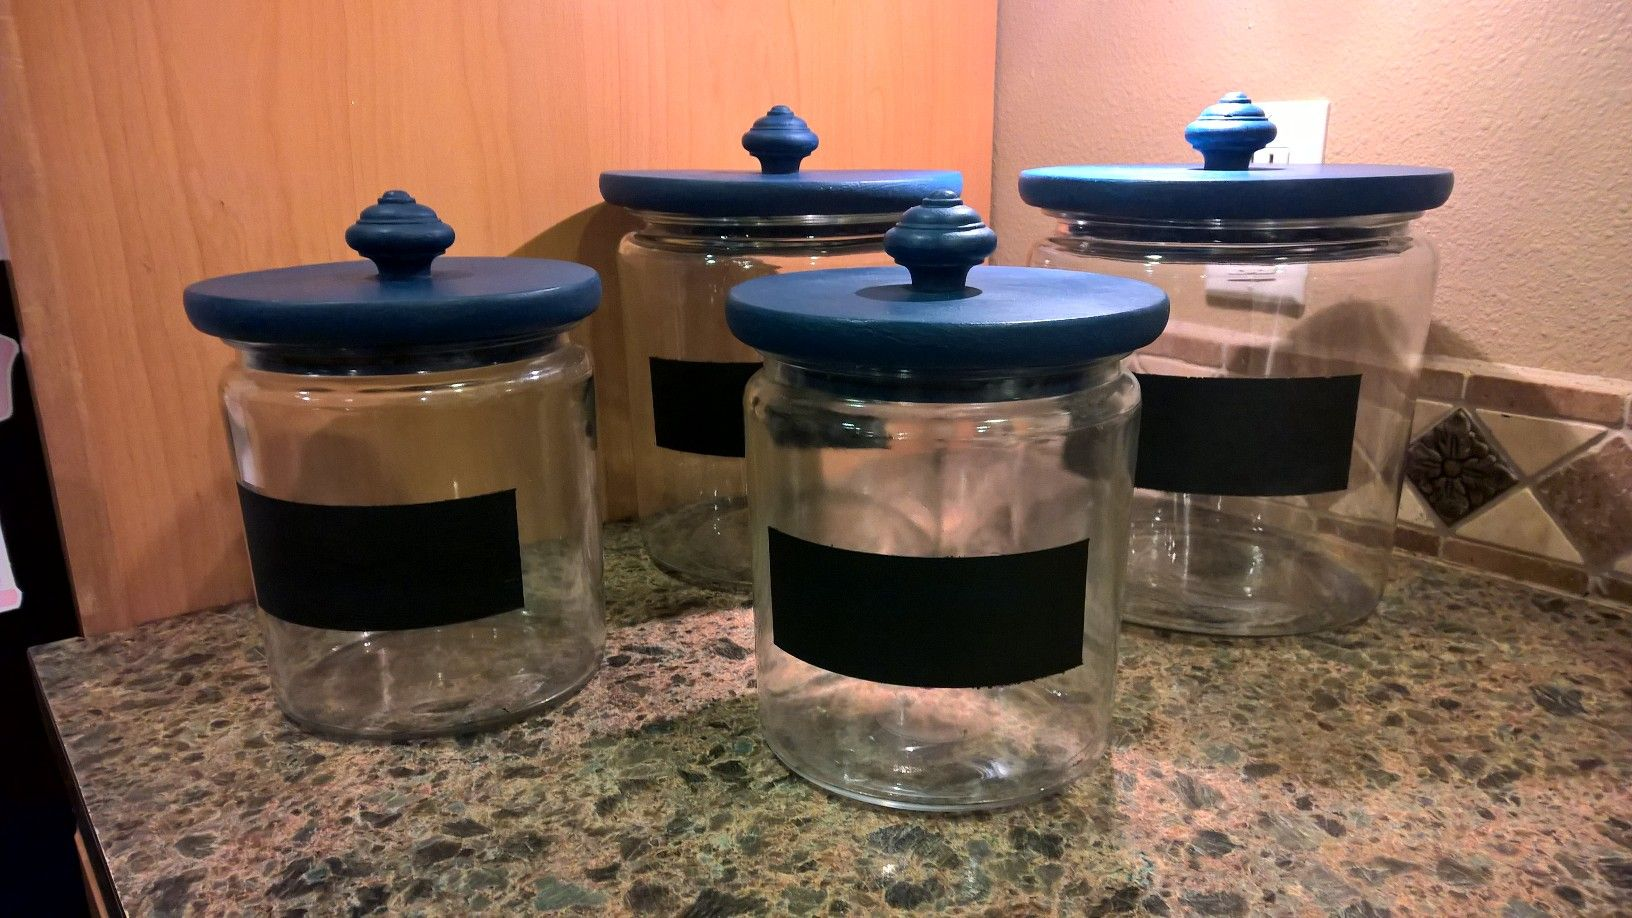 Kitchen cannisters painted in Napoleonic Blue by Annette.